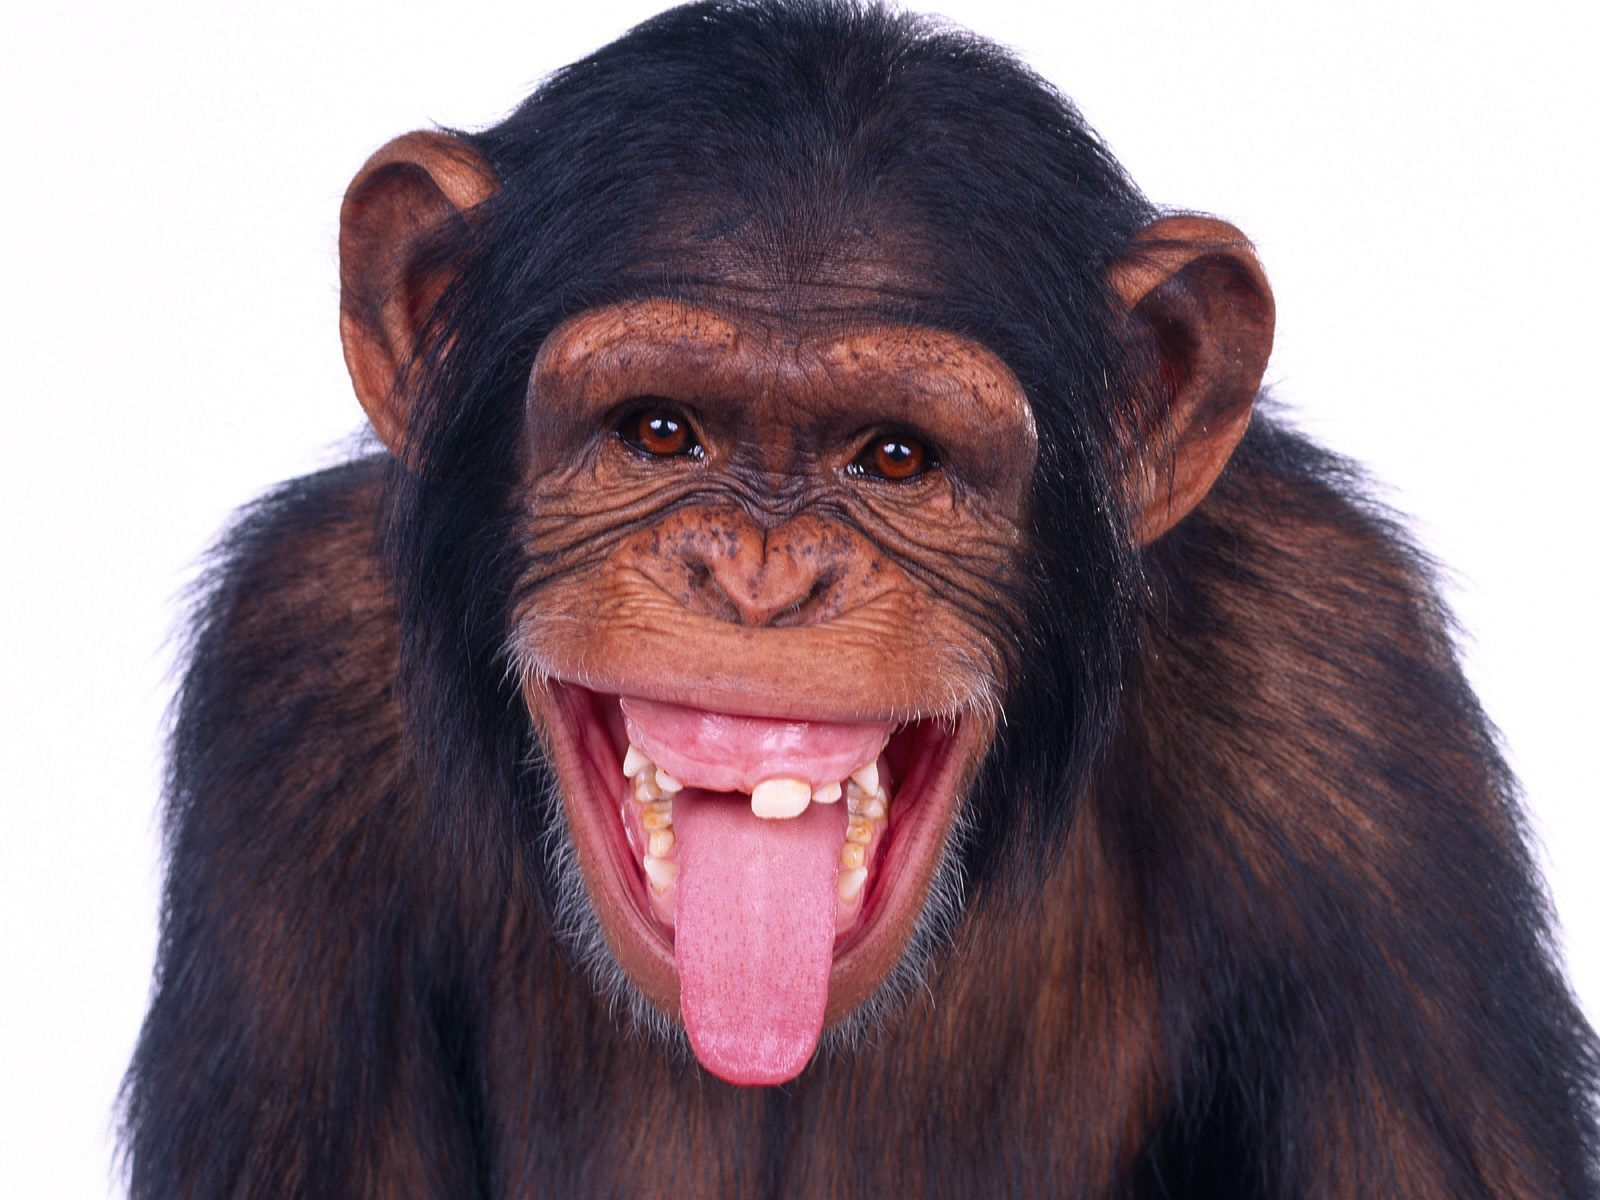 23127 Screensavers and Wallpapers Monkeys for phone. Download Animals, Monkeys pictures for free